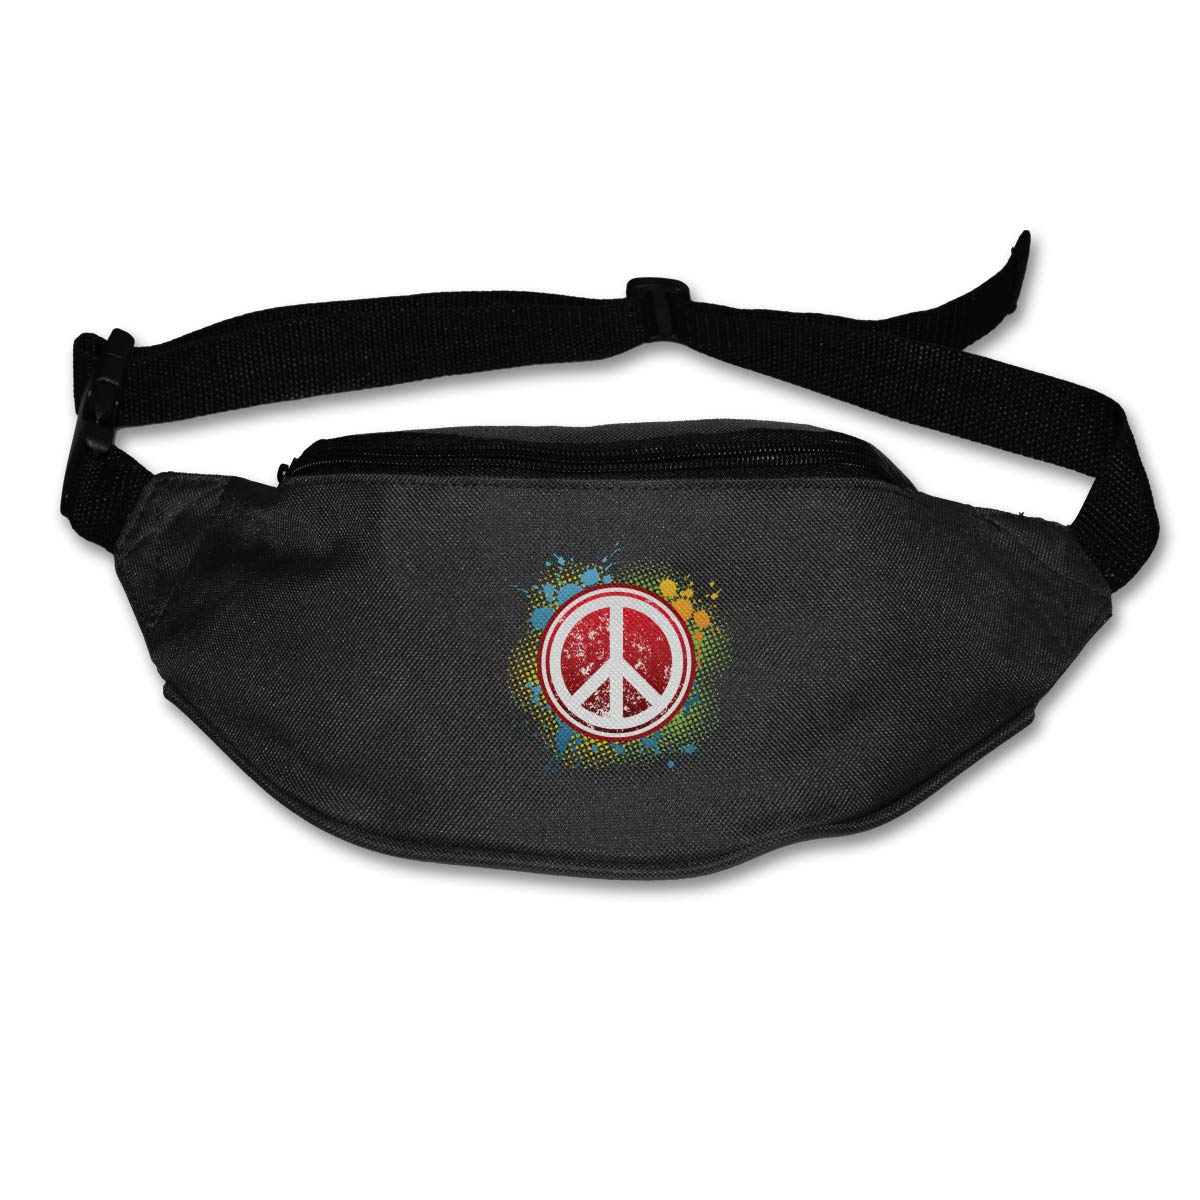 Red Peace Sign Sport Waist Bag Fanny Pack Adjustable For Run